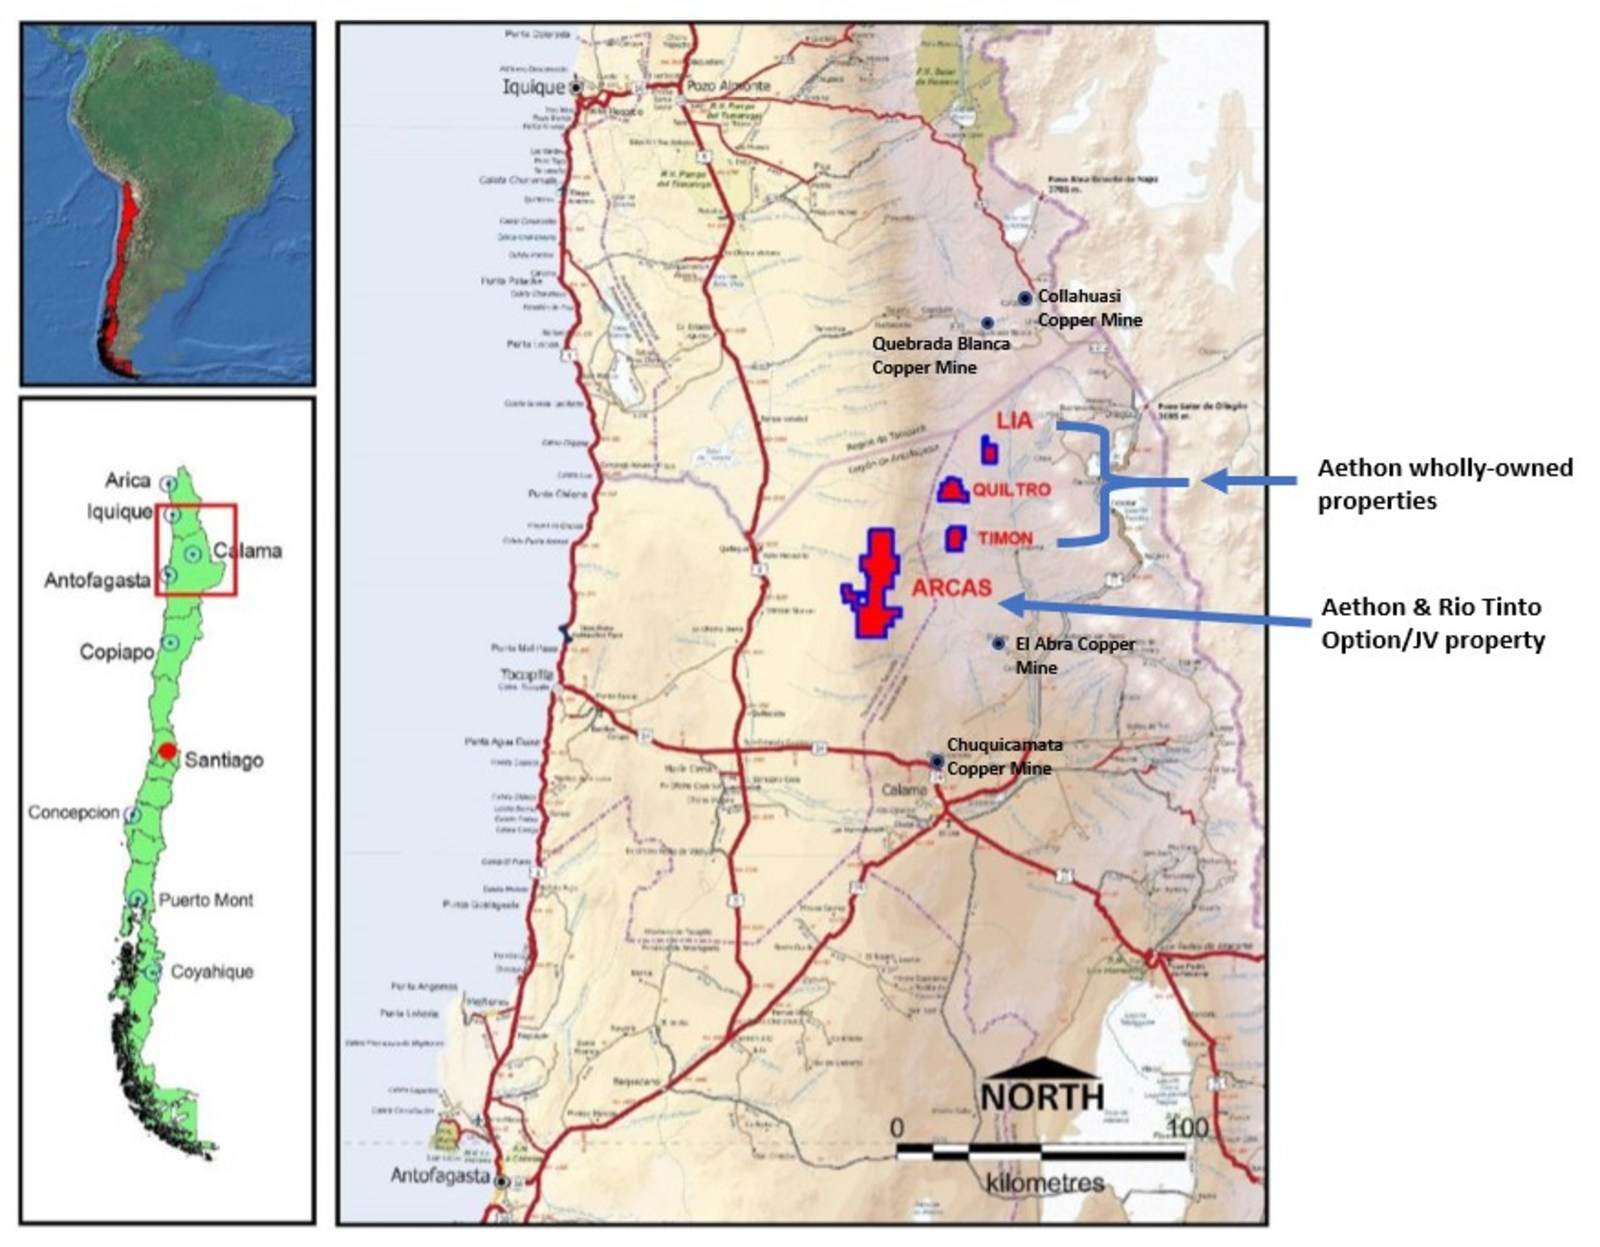 Figure 1:  Location of the Arcas Project & Aethon's Nearby Wholly-Owned Properties